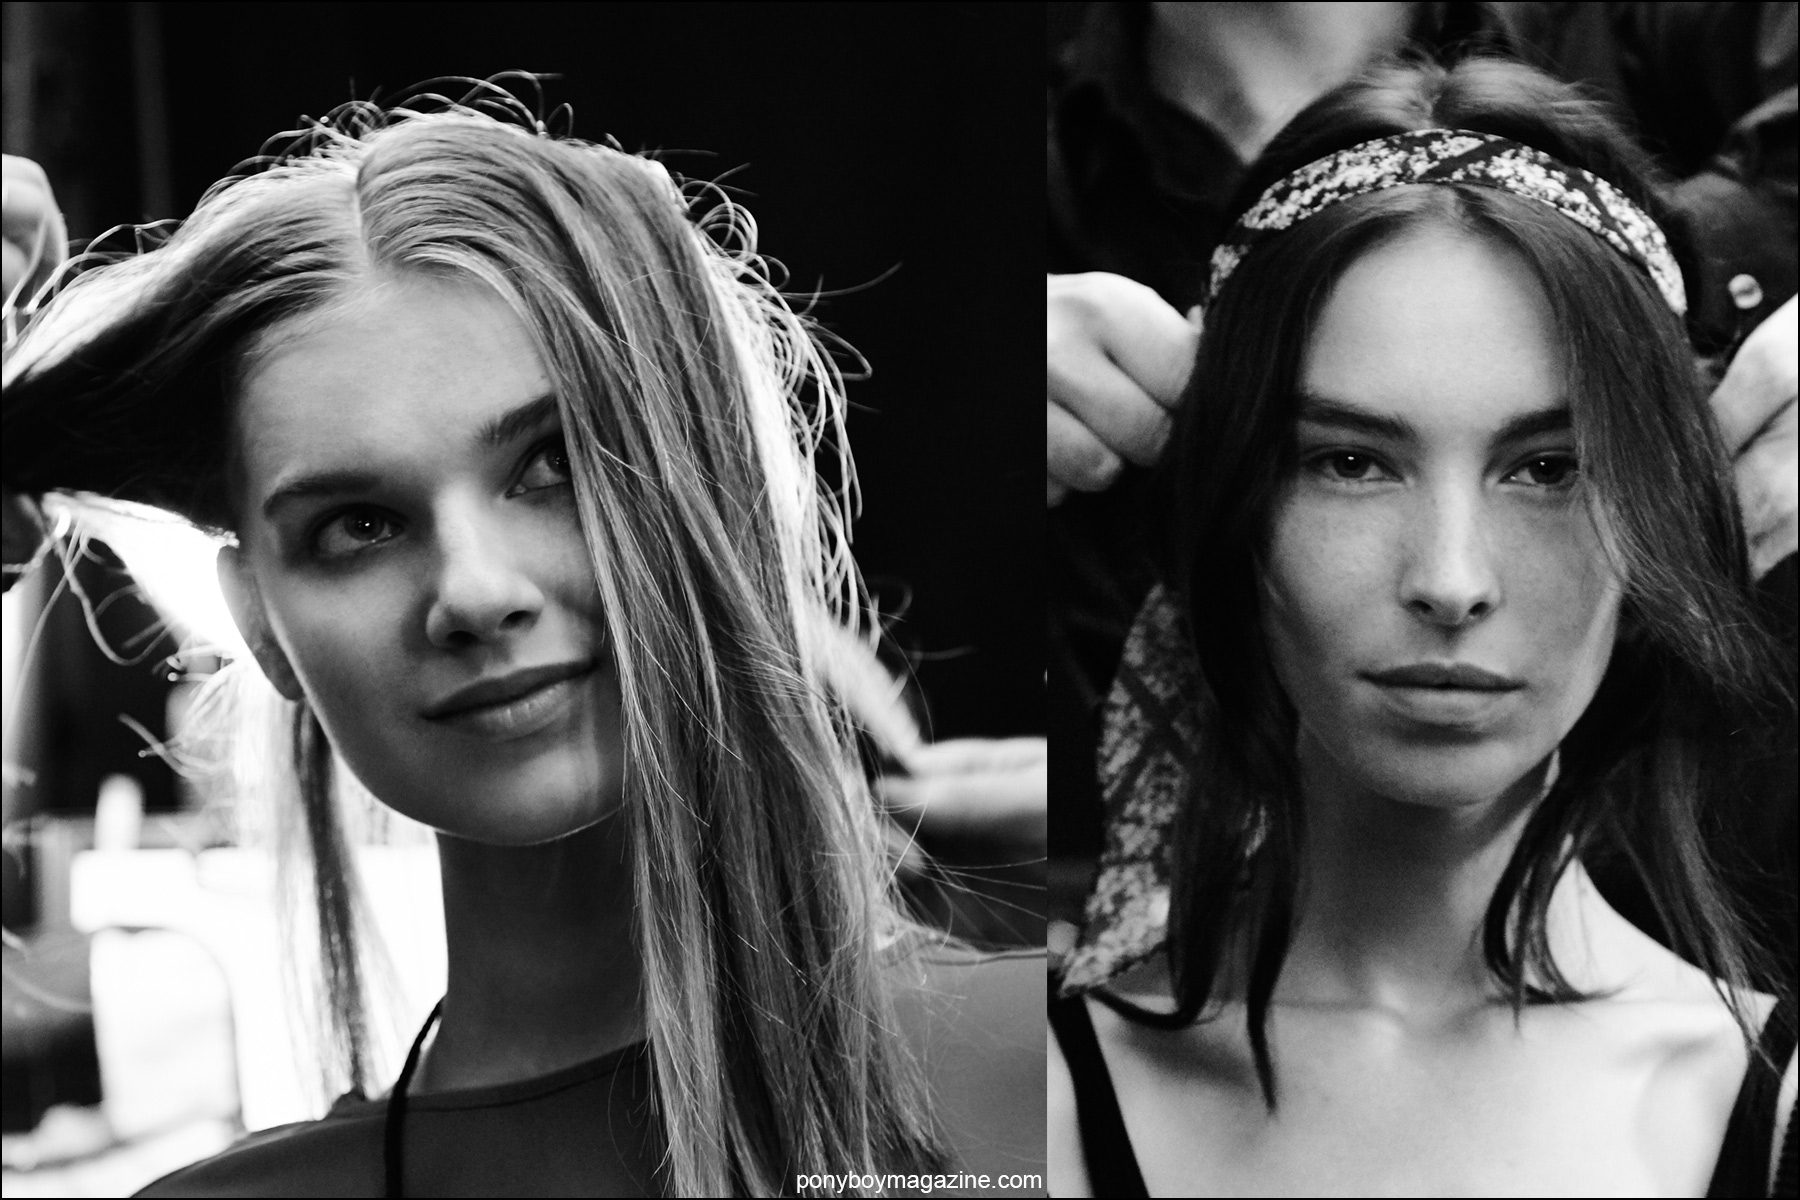 Models in hair, backstage at the Erin Fetherston S/S 2016 womenswear show. Photography by Alexander Thompson for Ponyboy magazine NY.